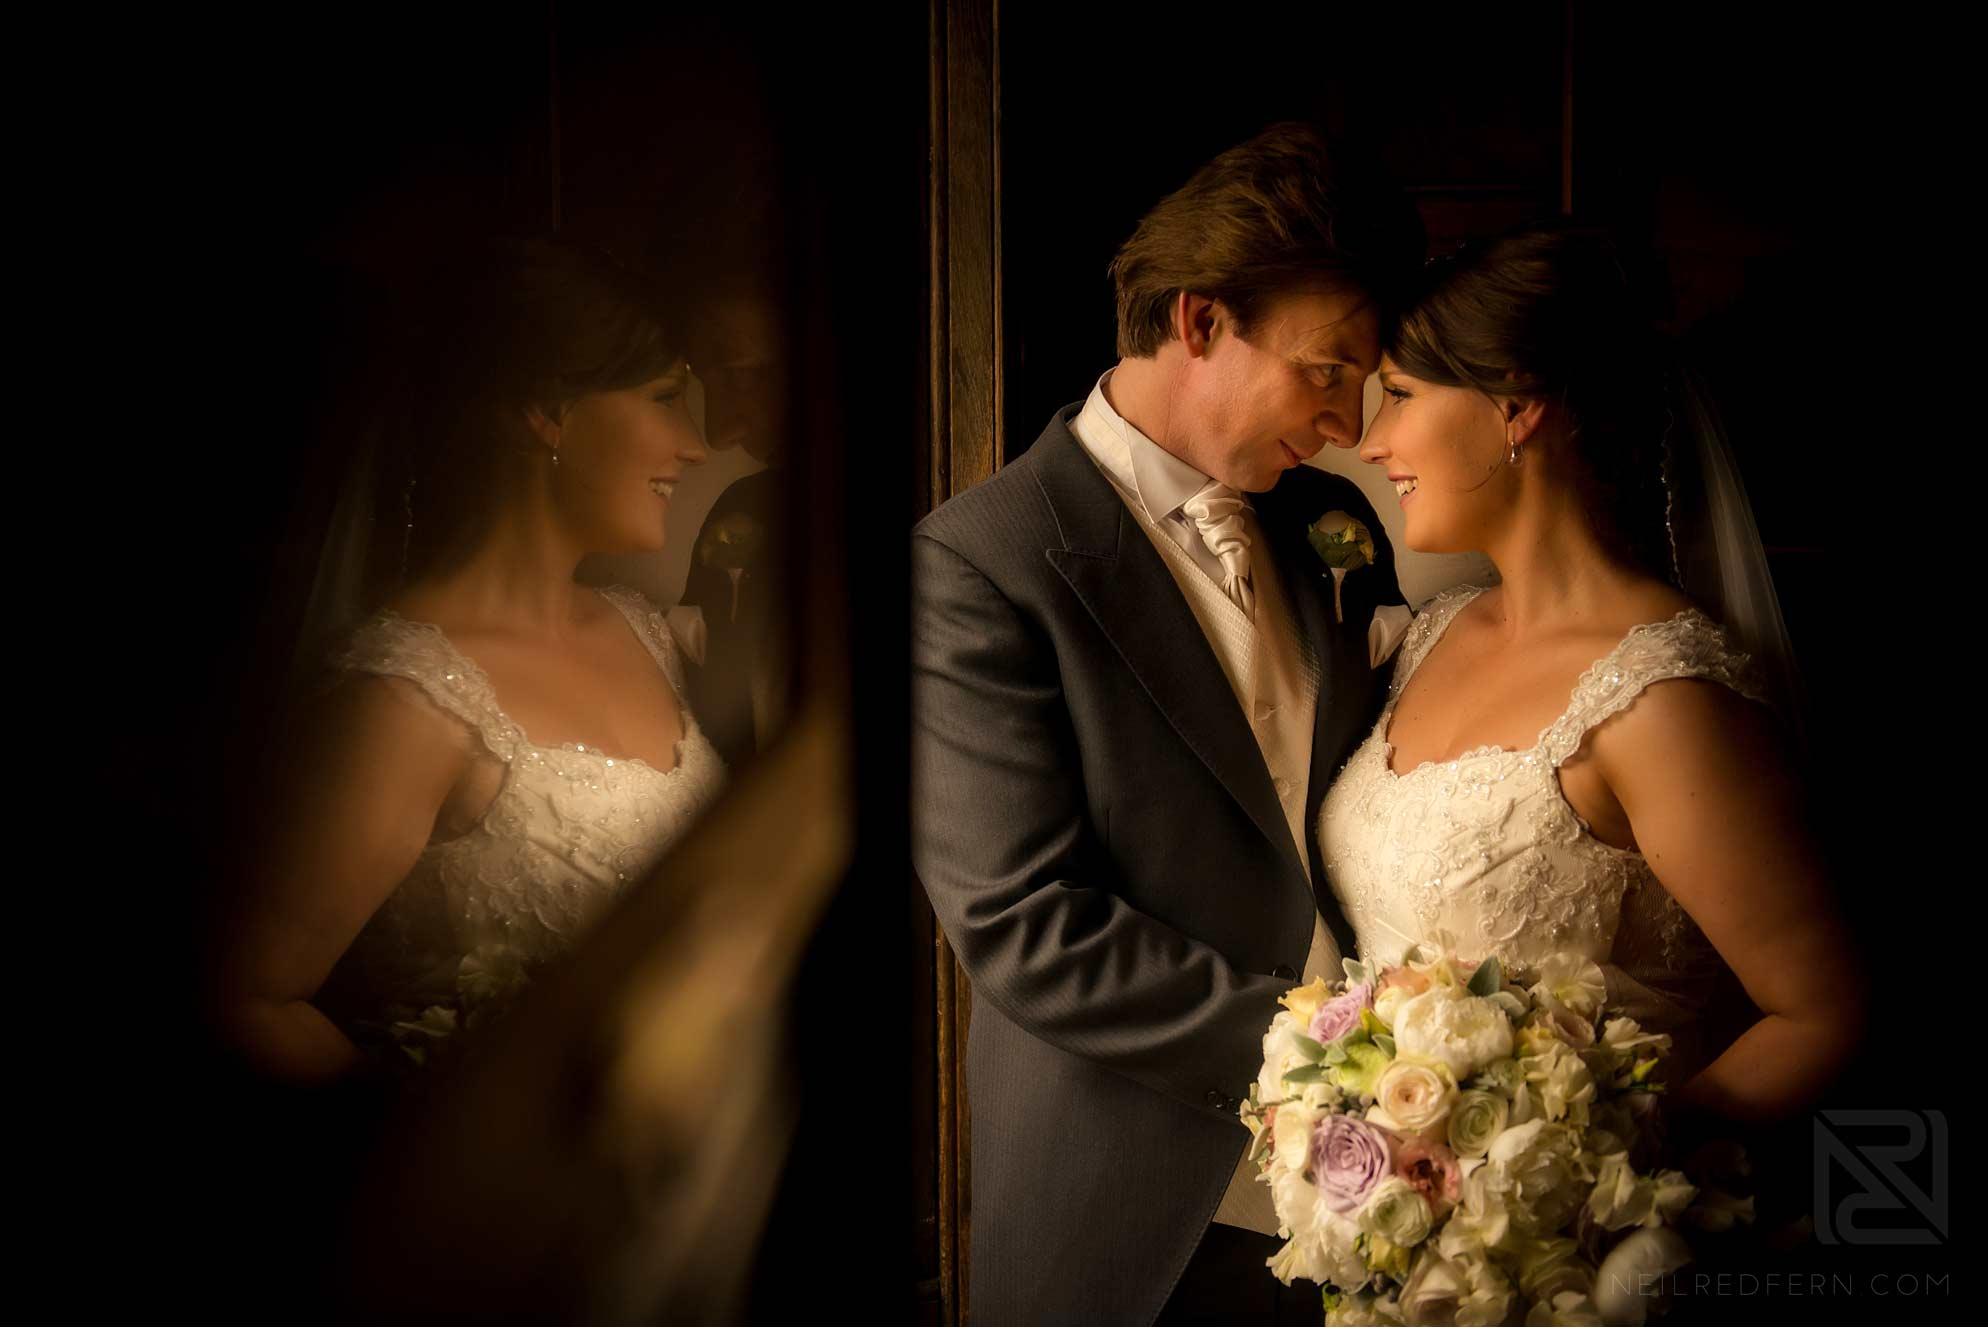 photograph of bride and groom with reflection in mirror